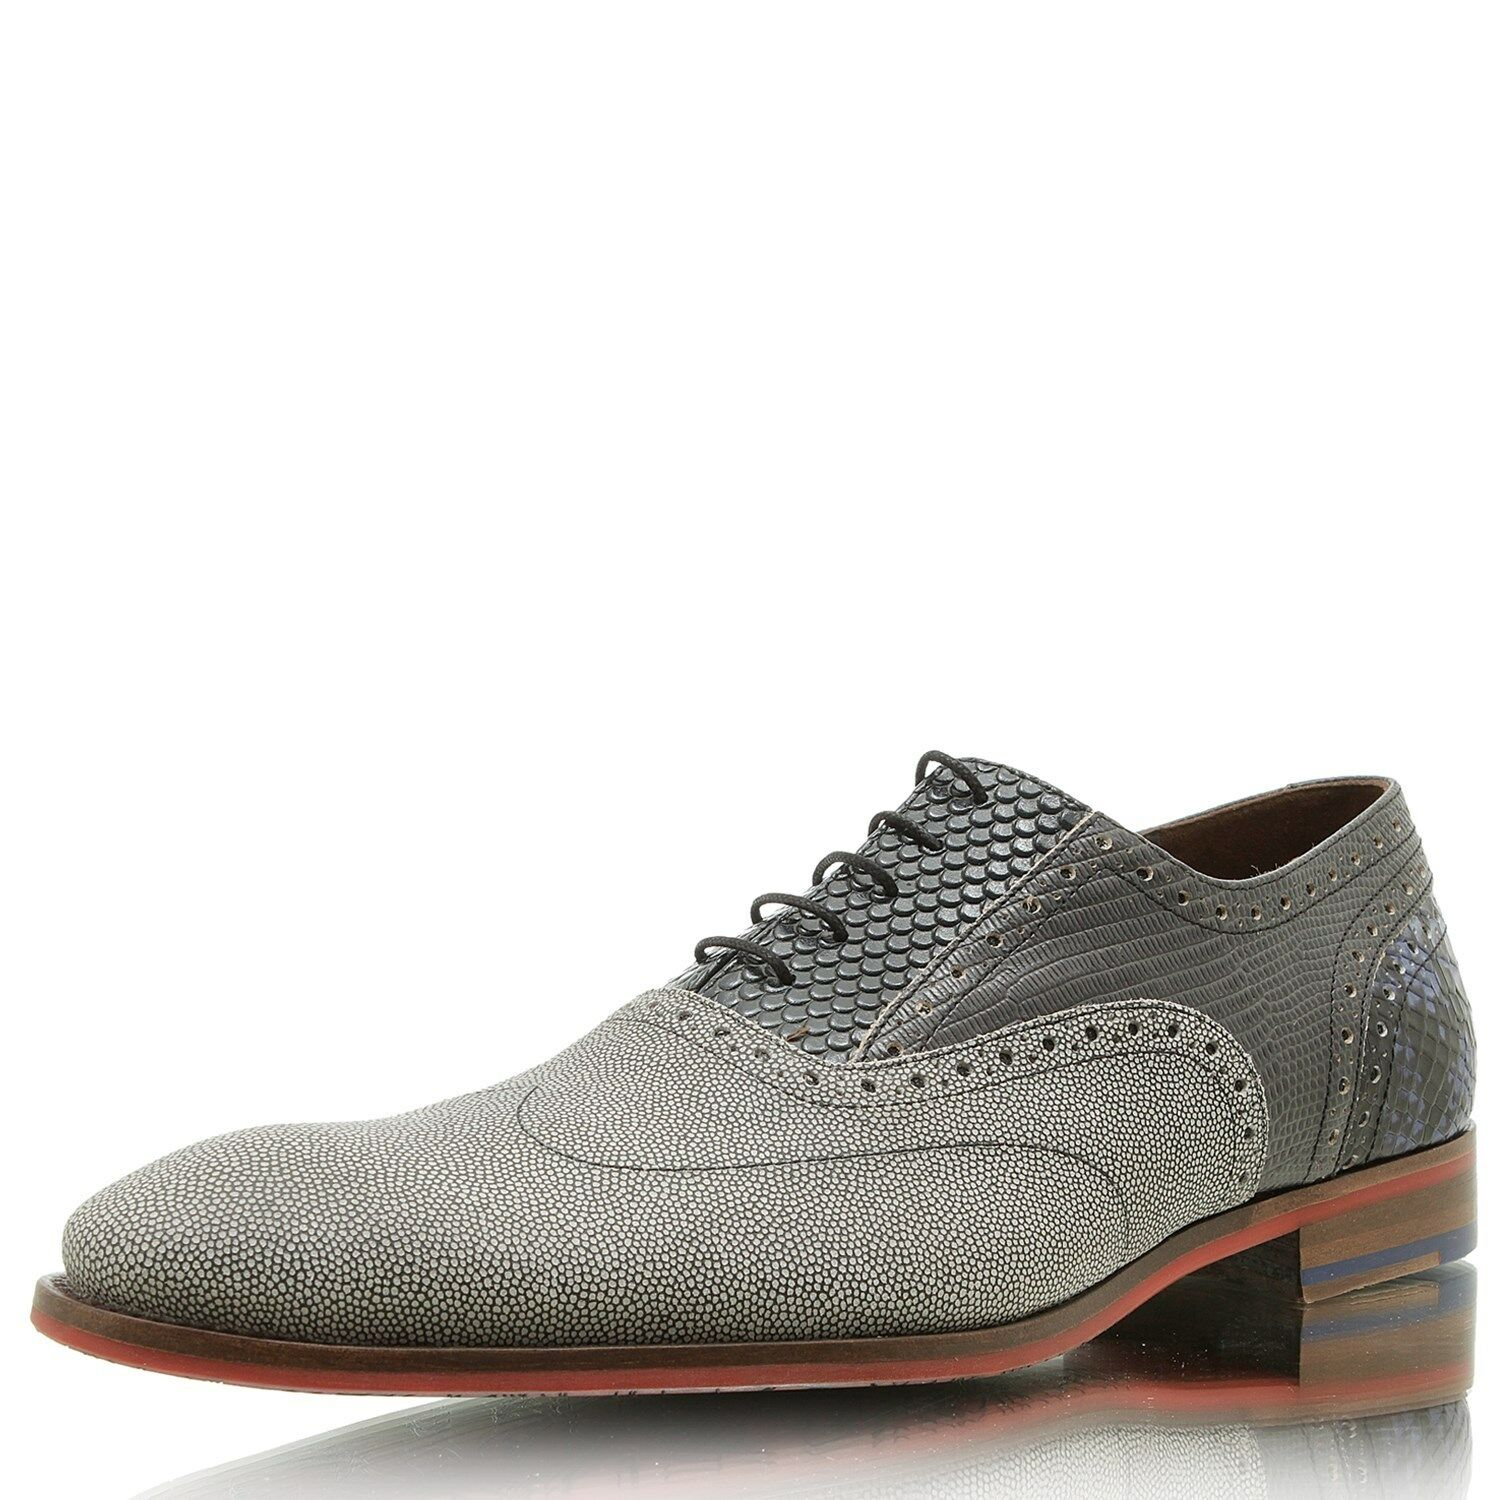 FLORIS VAN BOMMEL Dressed 19114/00 grey suede